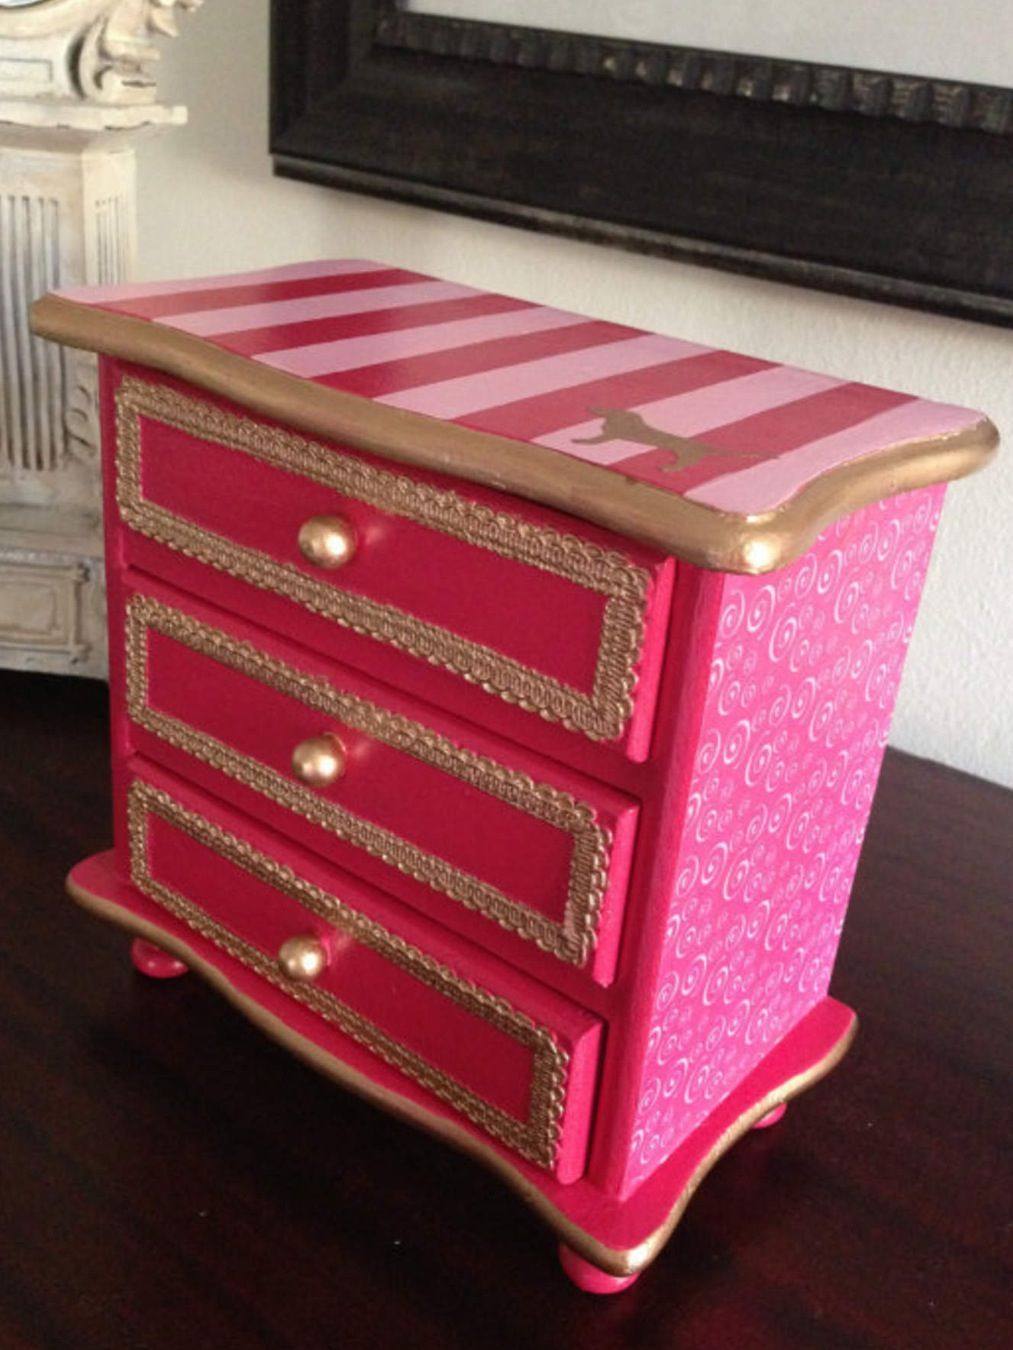 Victoria Secret PINK Jewelry Box Cute Pinterest Box Upcycle